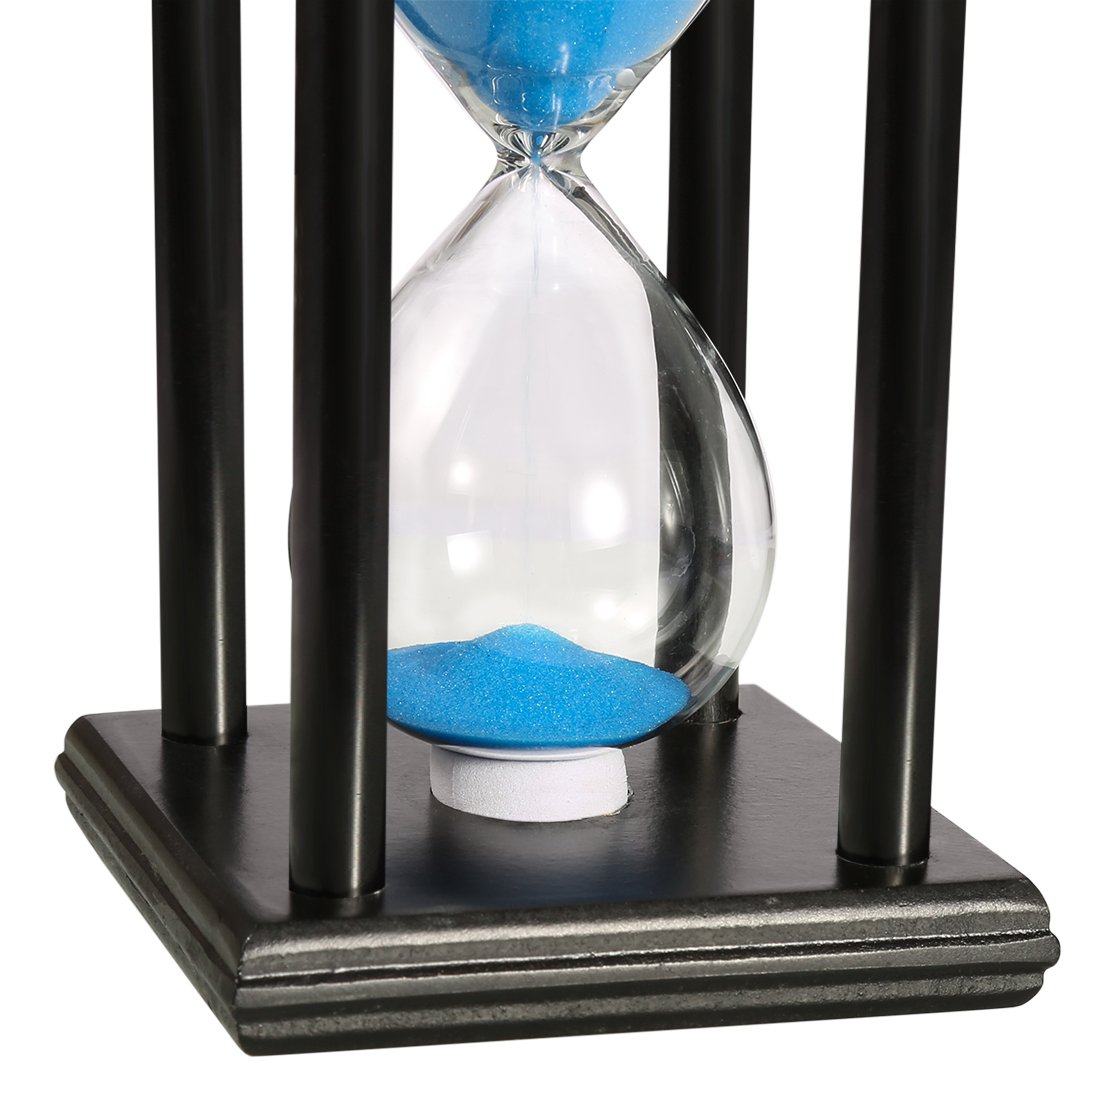 BOJIN 20 Minute Hourglass Sand Timer Wooden Black Stand Hourglass Clock for Office Kitchen Decor Home - Blue Sand by BOJIN (Image #2)